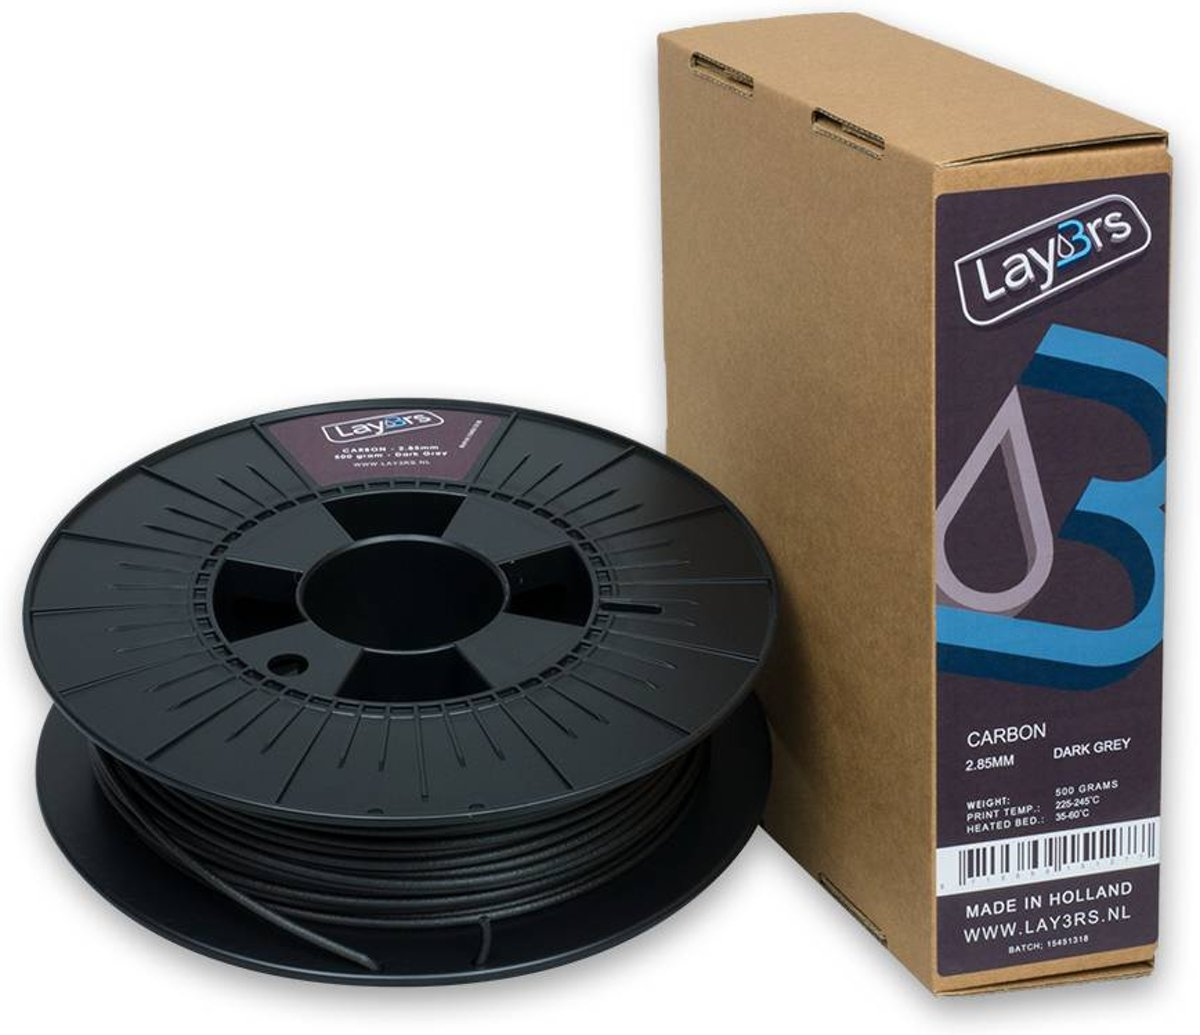 Lay3rs Carbon - 2.85 mm